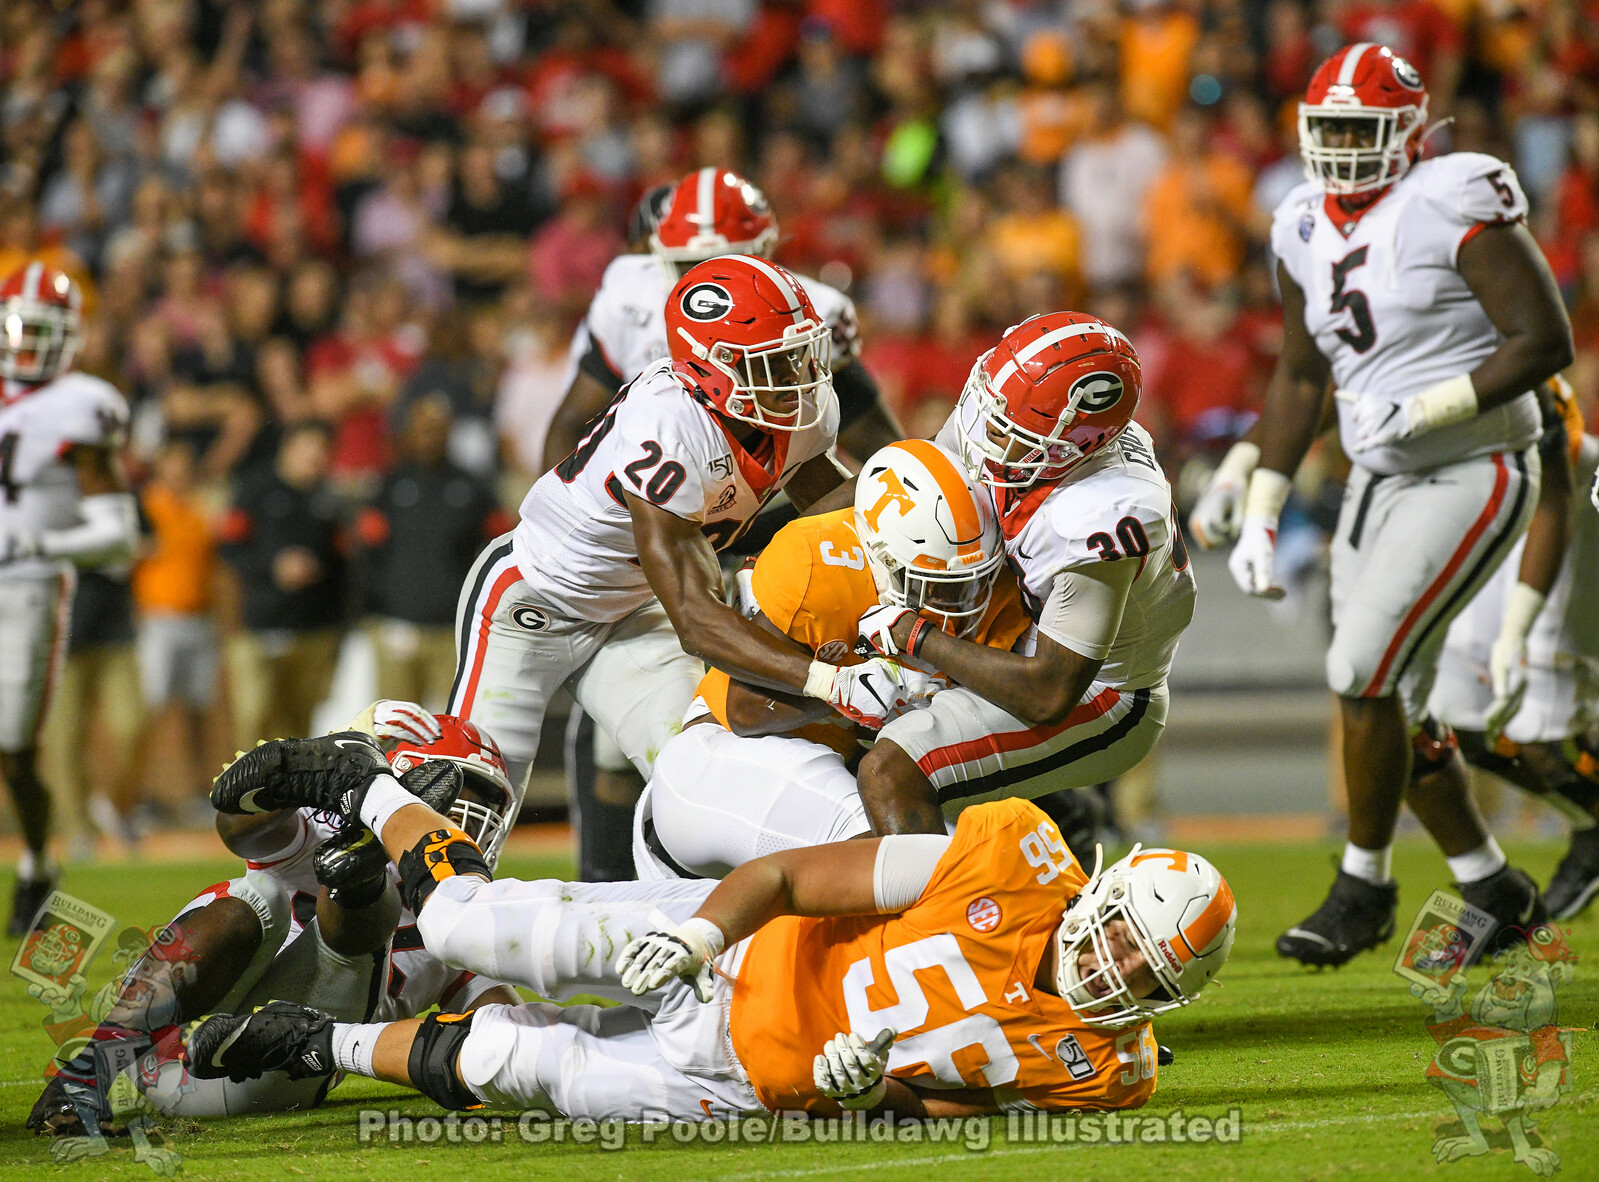 J.R. Reed (20) and Tae Crowder (30) tackle Vols' running back Eric Gray.